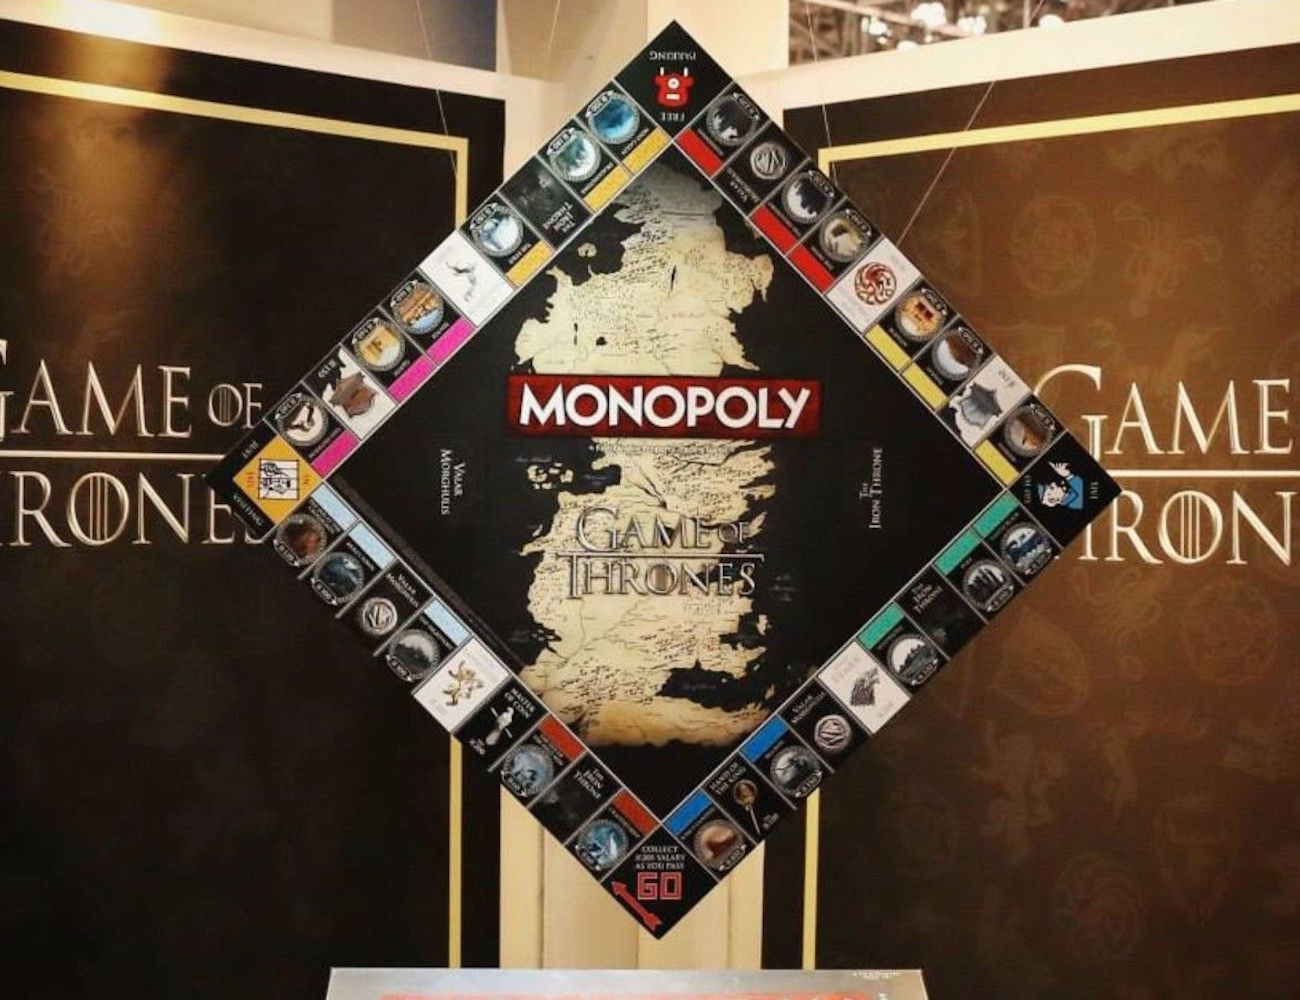 monopoly-game-of-thrones-collectors-edition-board-game-02